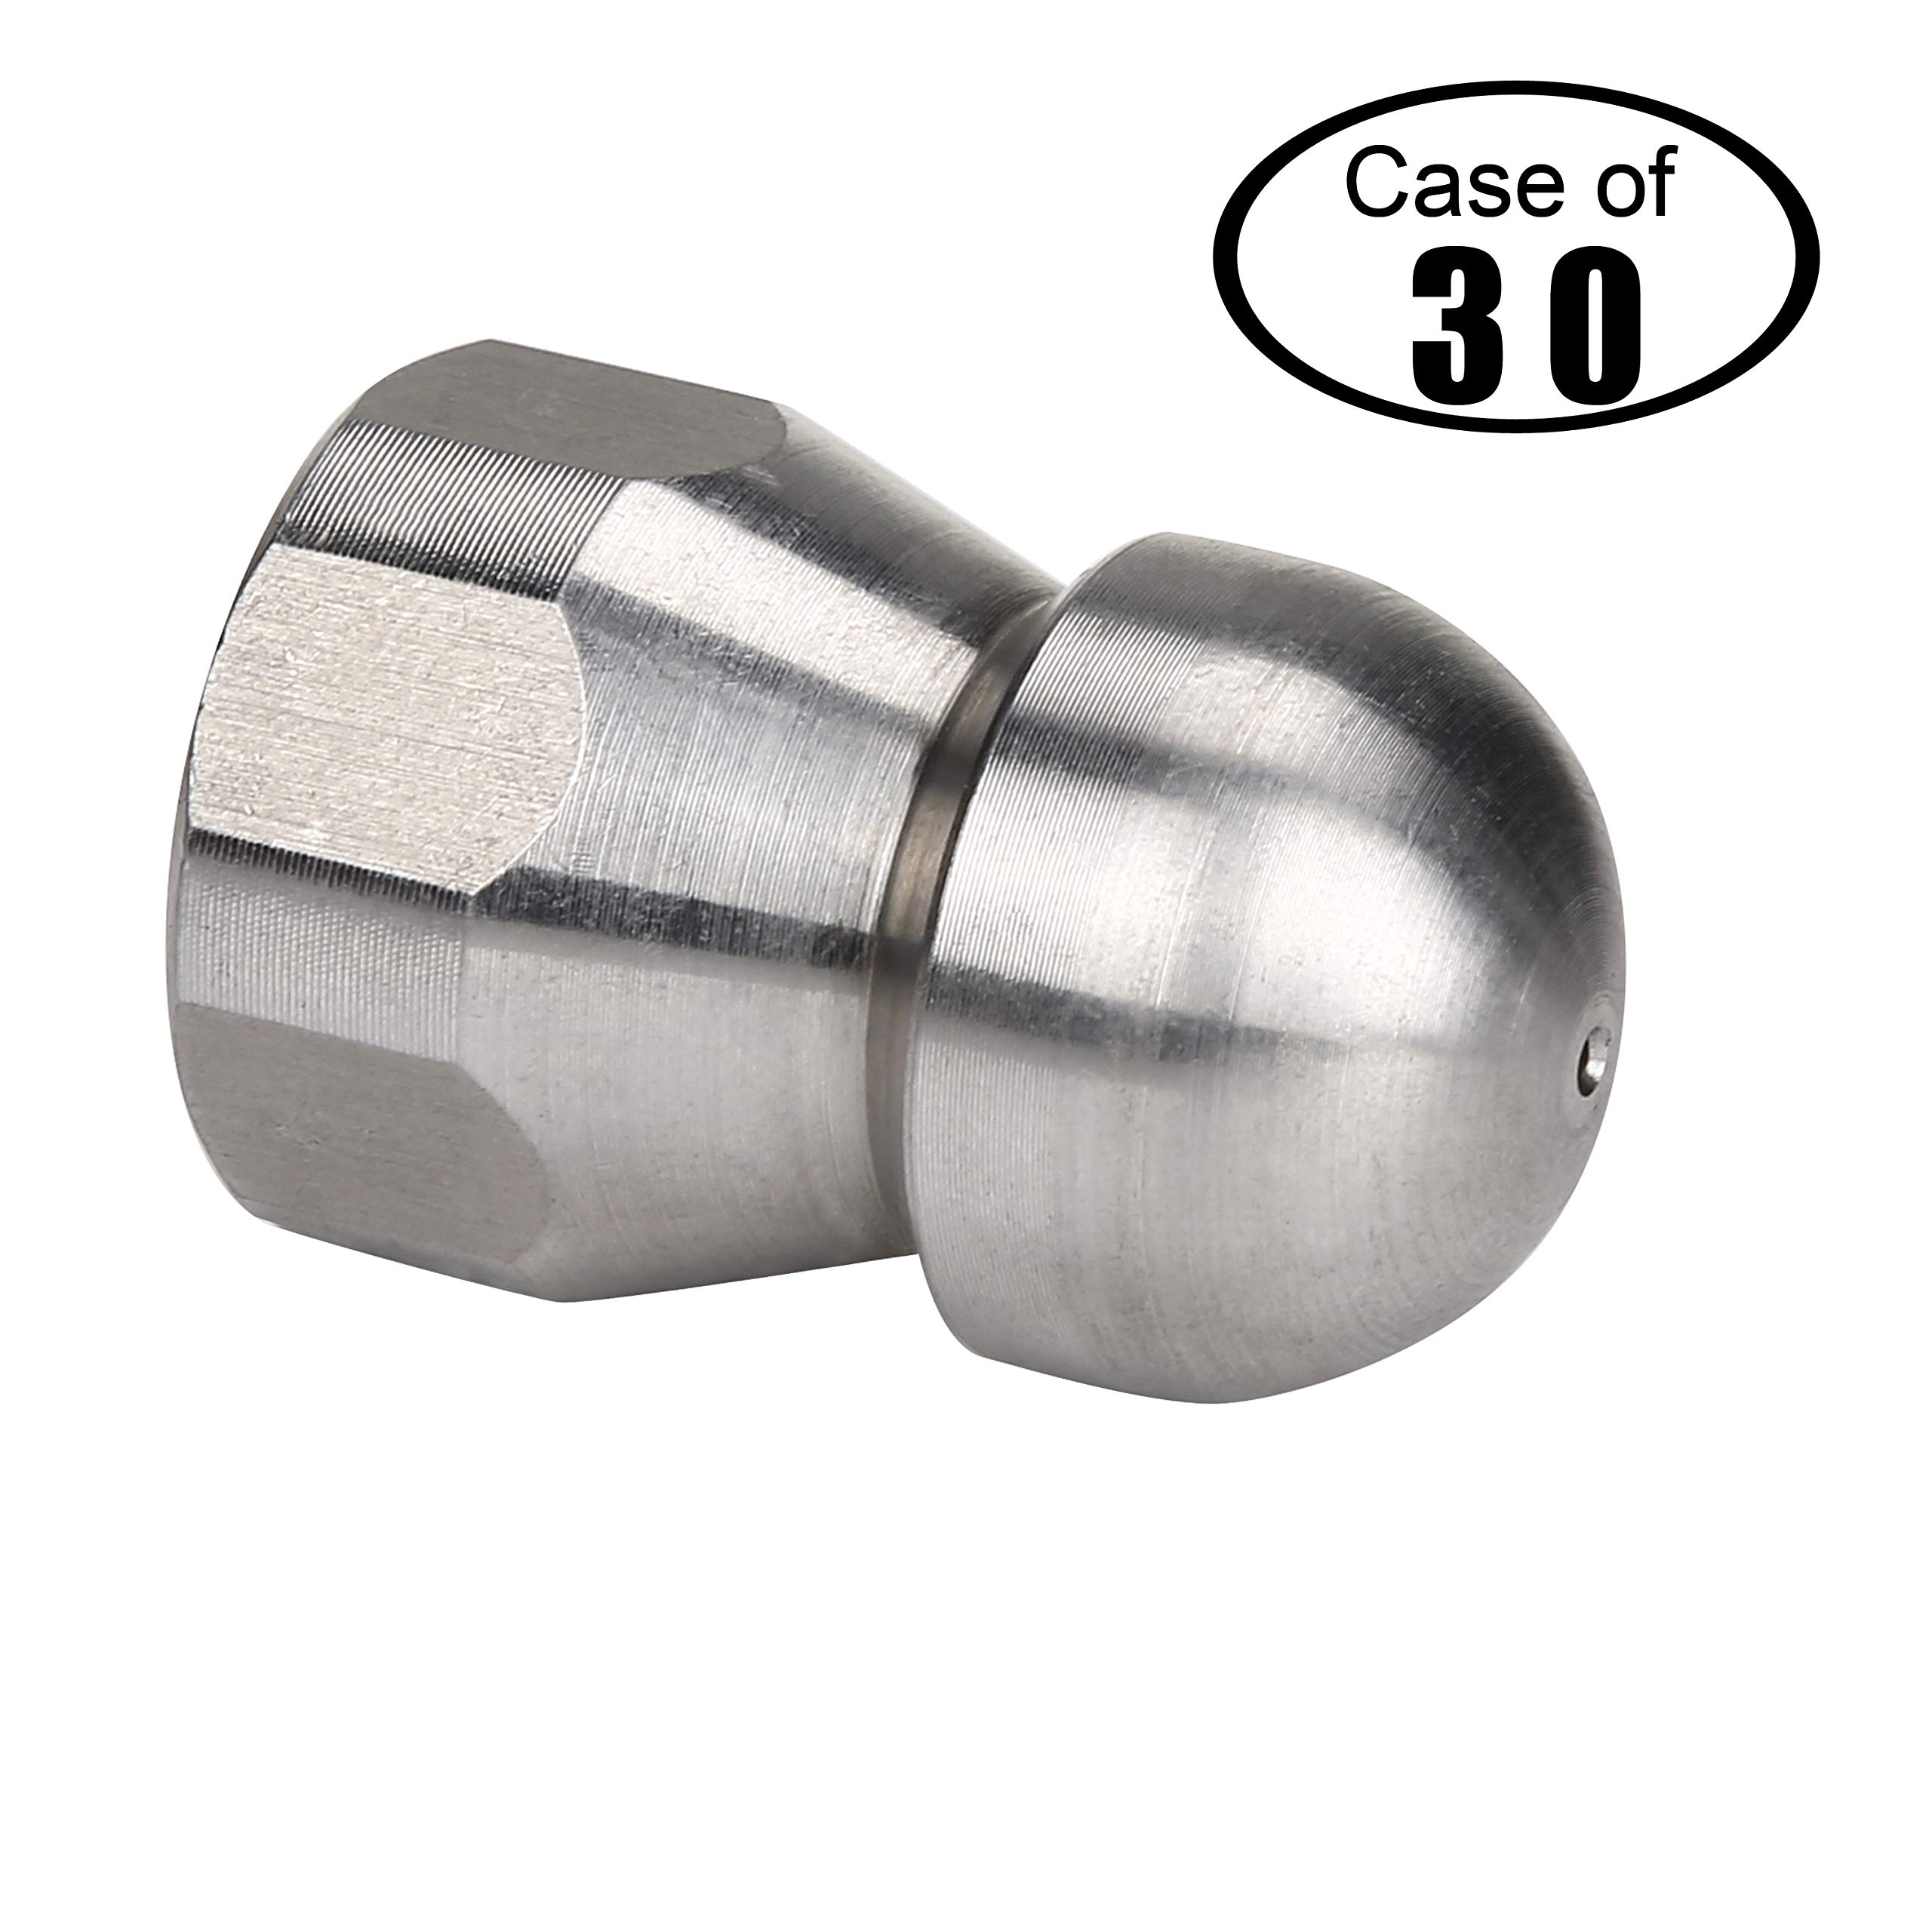 Tool Daily Case of 30, Stainless Steel Fixed Sewer Jet Nozzle, Button Nose Female, 4.0 Orifice, 4000 PSI (3/8'')